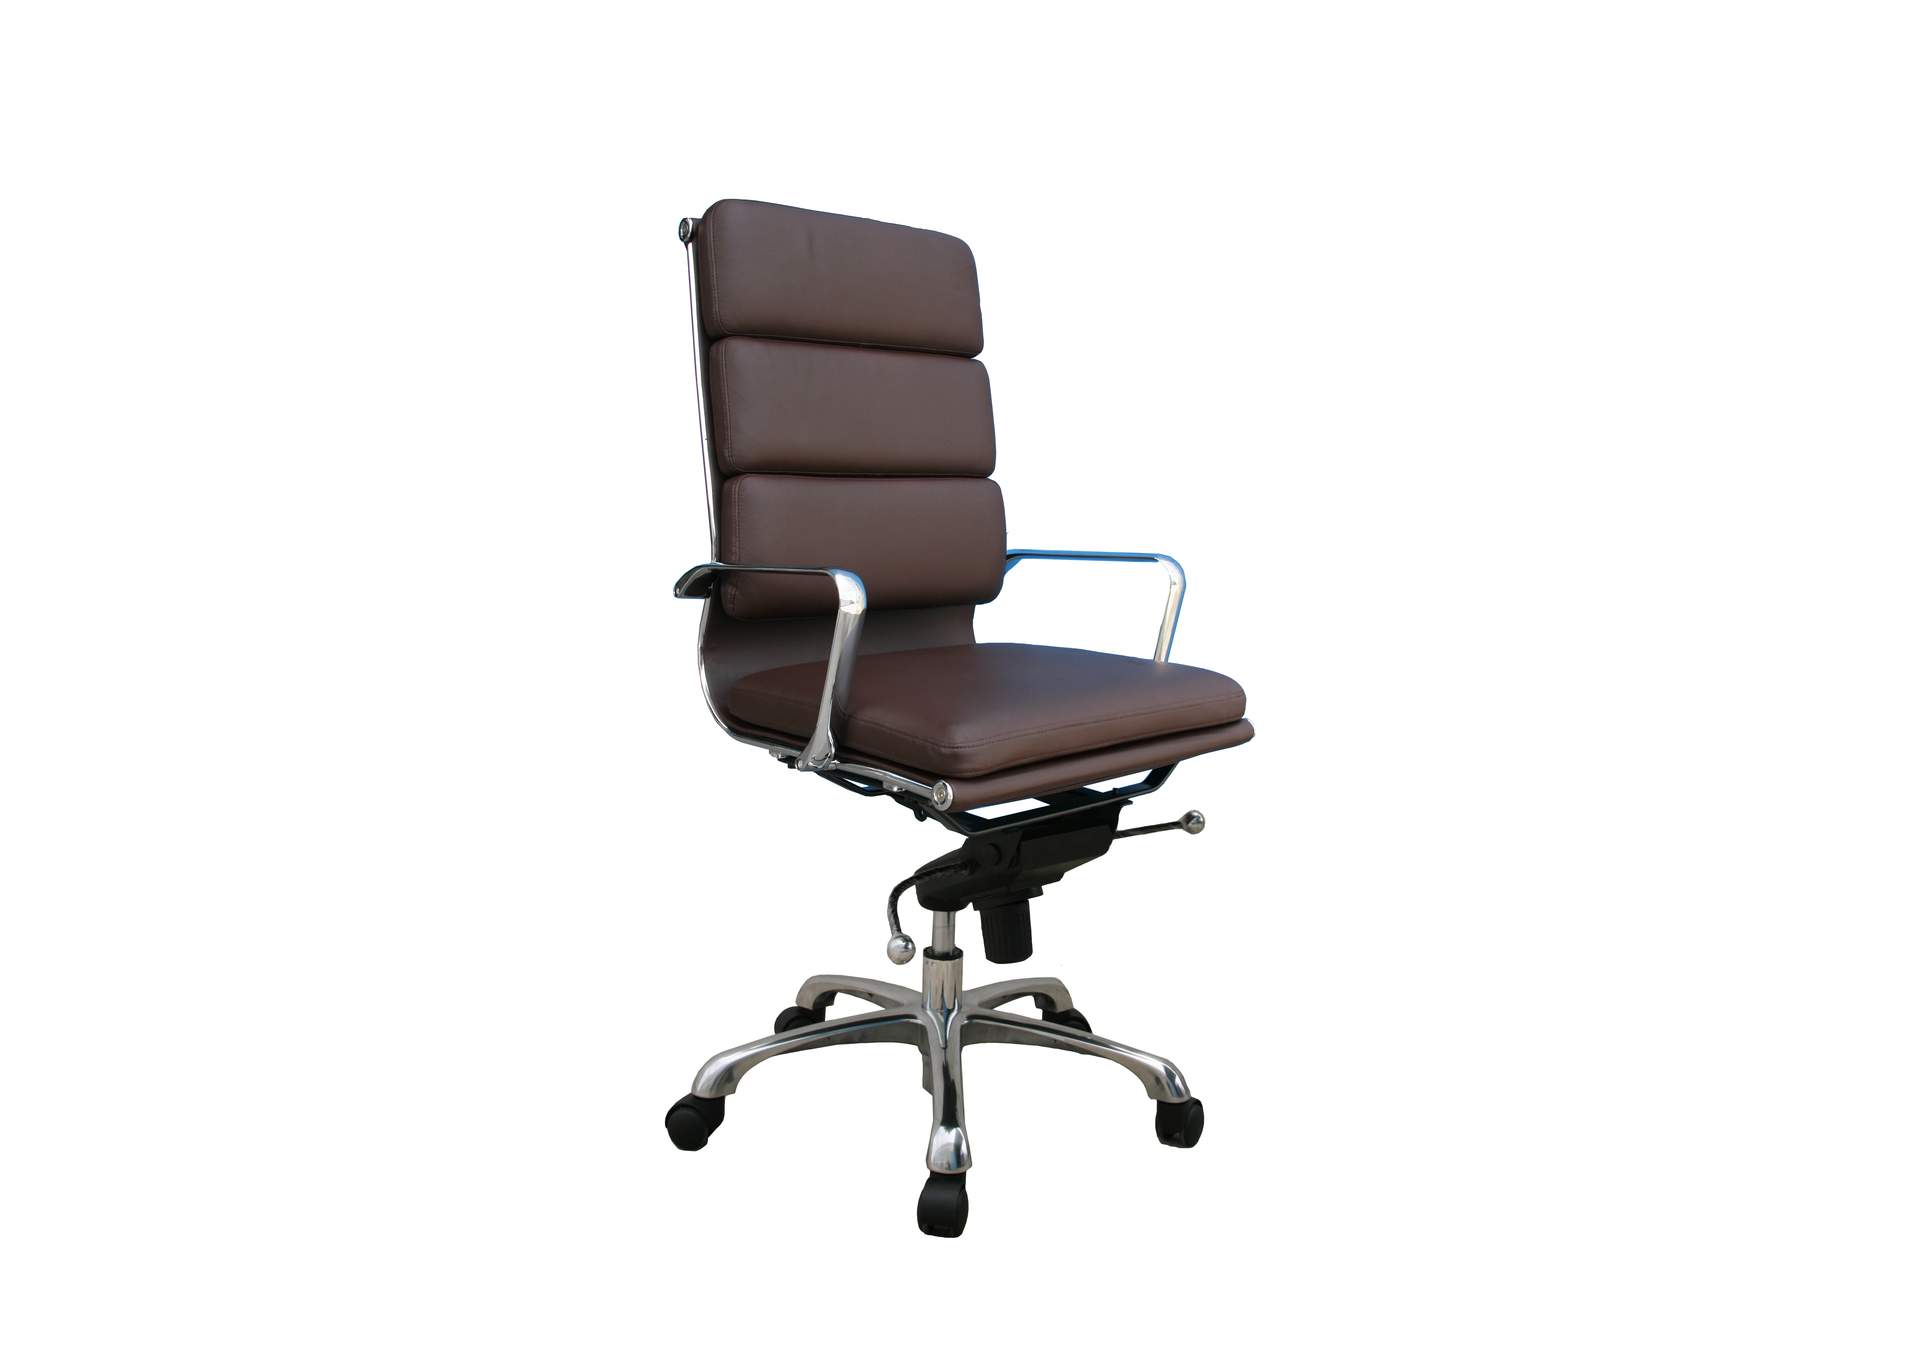 Plush Brown High Back Office Chair,J&M Furniture